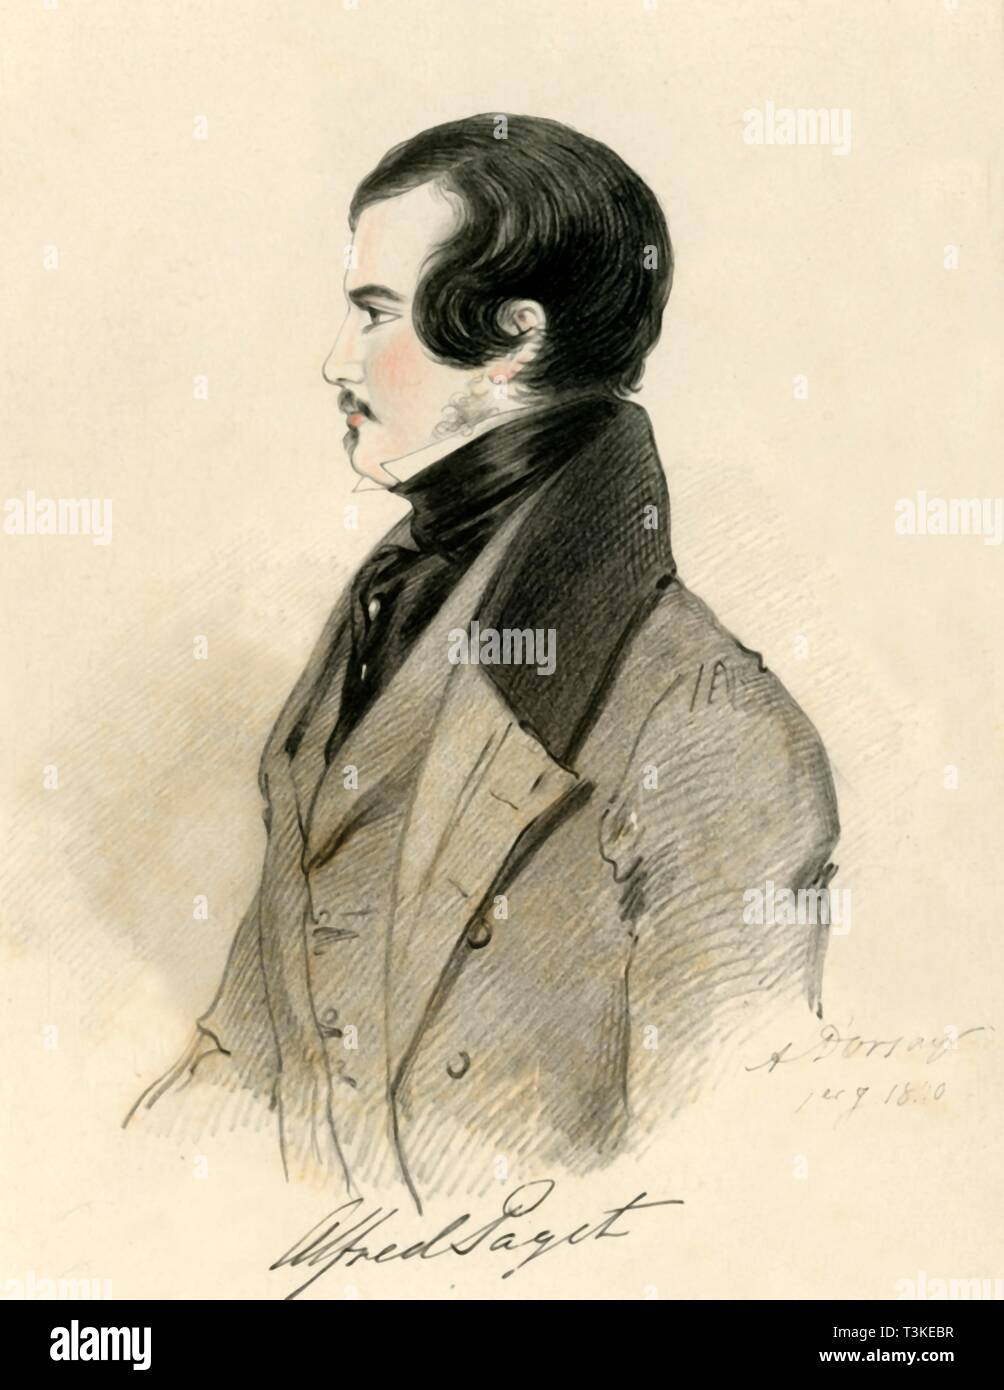 """'Alfred Paget', 1840. Portrait of Lord Alfred Henry Paget (1816-1888), British courtier, Liberal politician MP for Lichfield, and lieutenant in the Royal Horse Guards. From """"Portraits by Count D'Orsay"""", an album assembled by Lady Georgiana Codrington. [1850s] - Stock Image"""